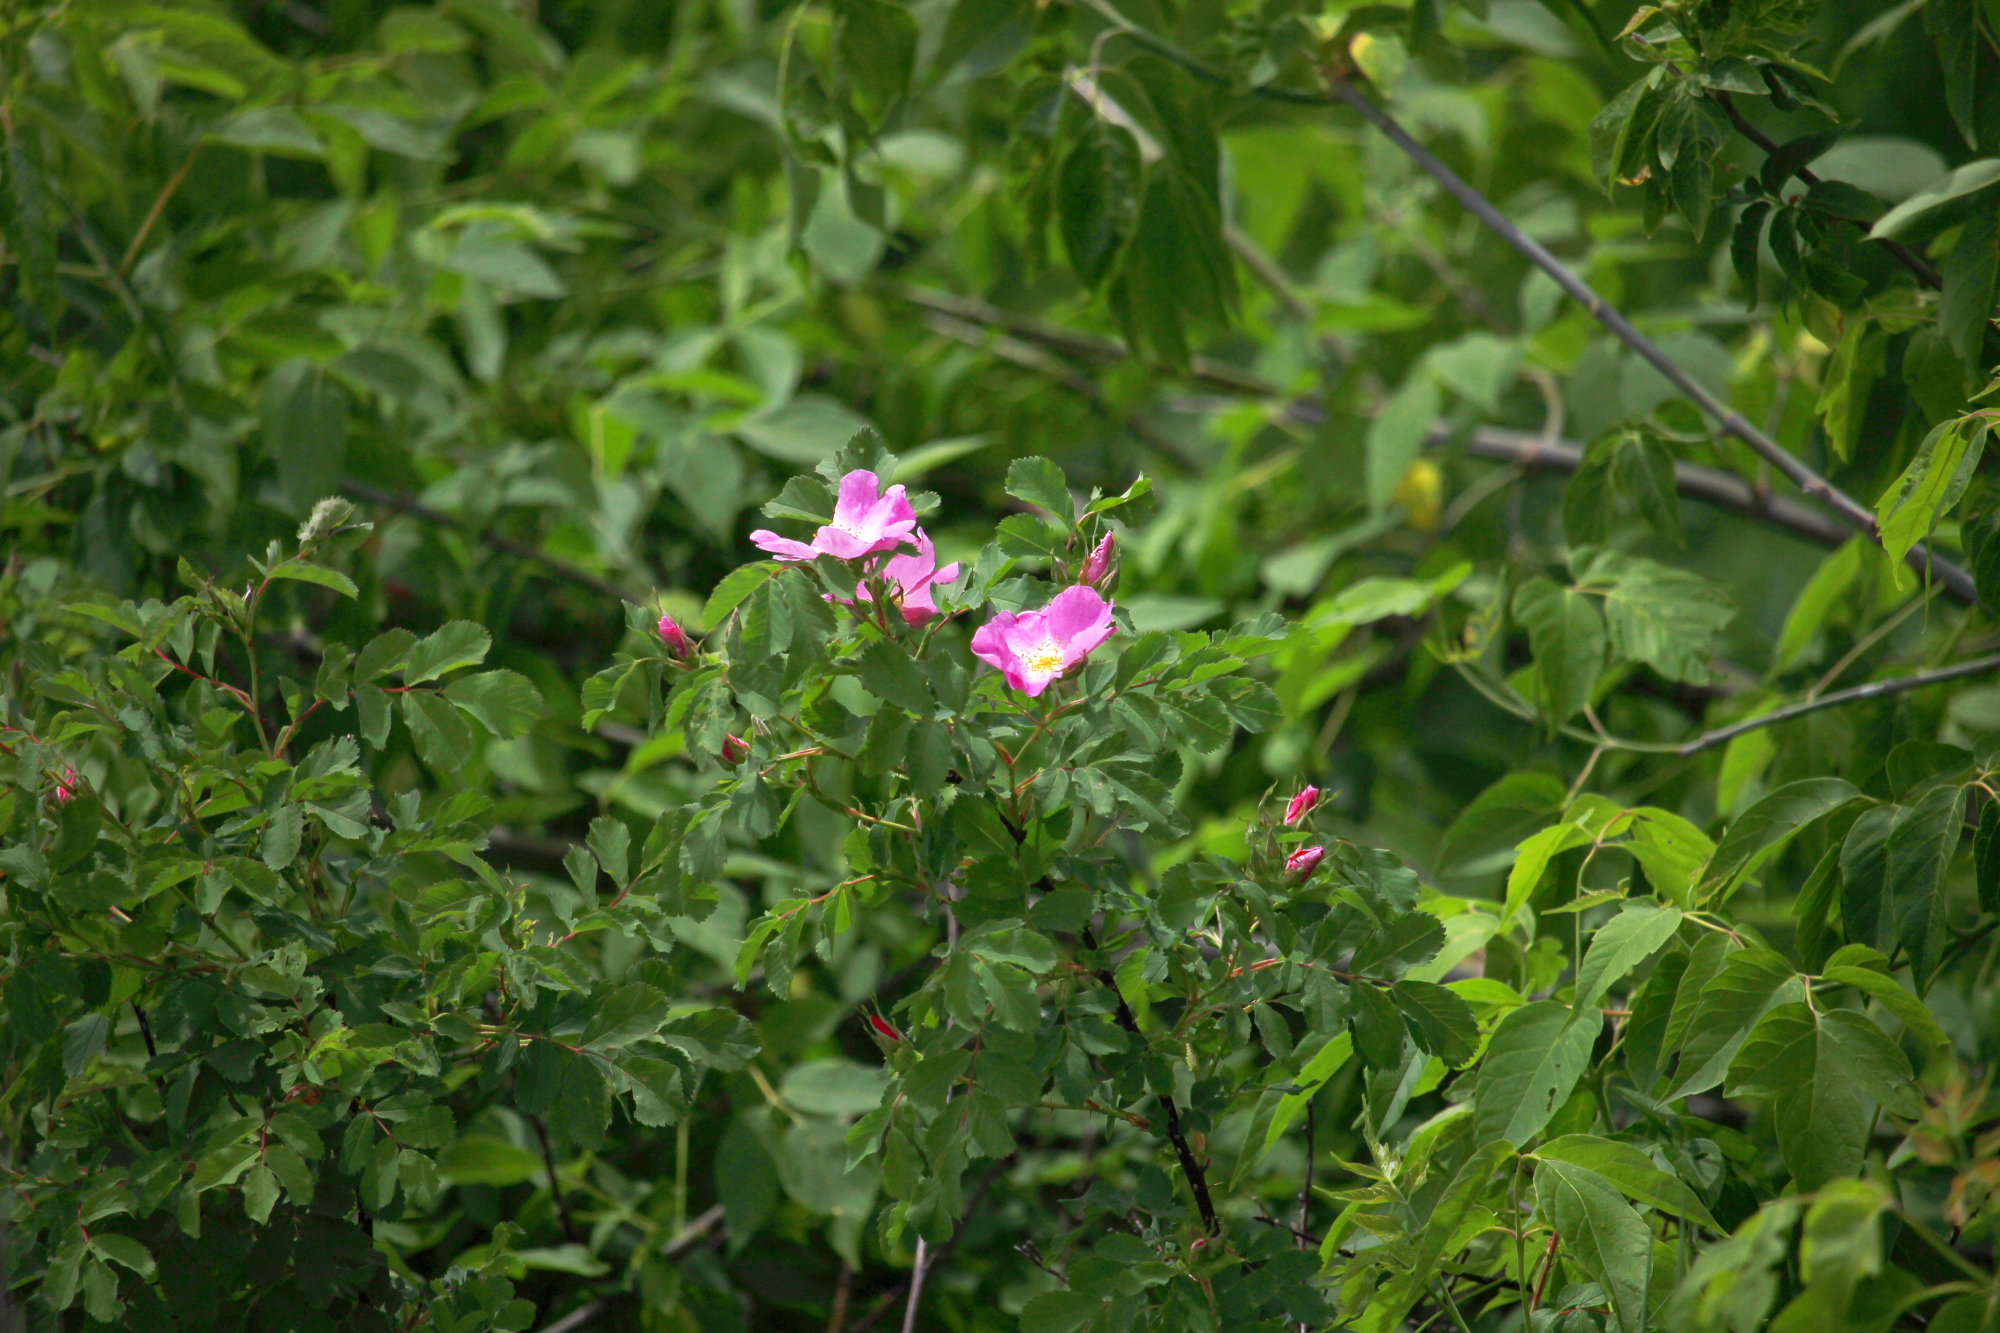 Pink flowers in the greenerry